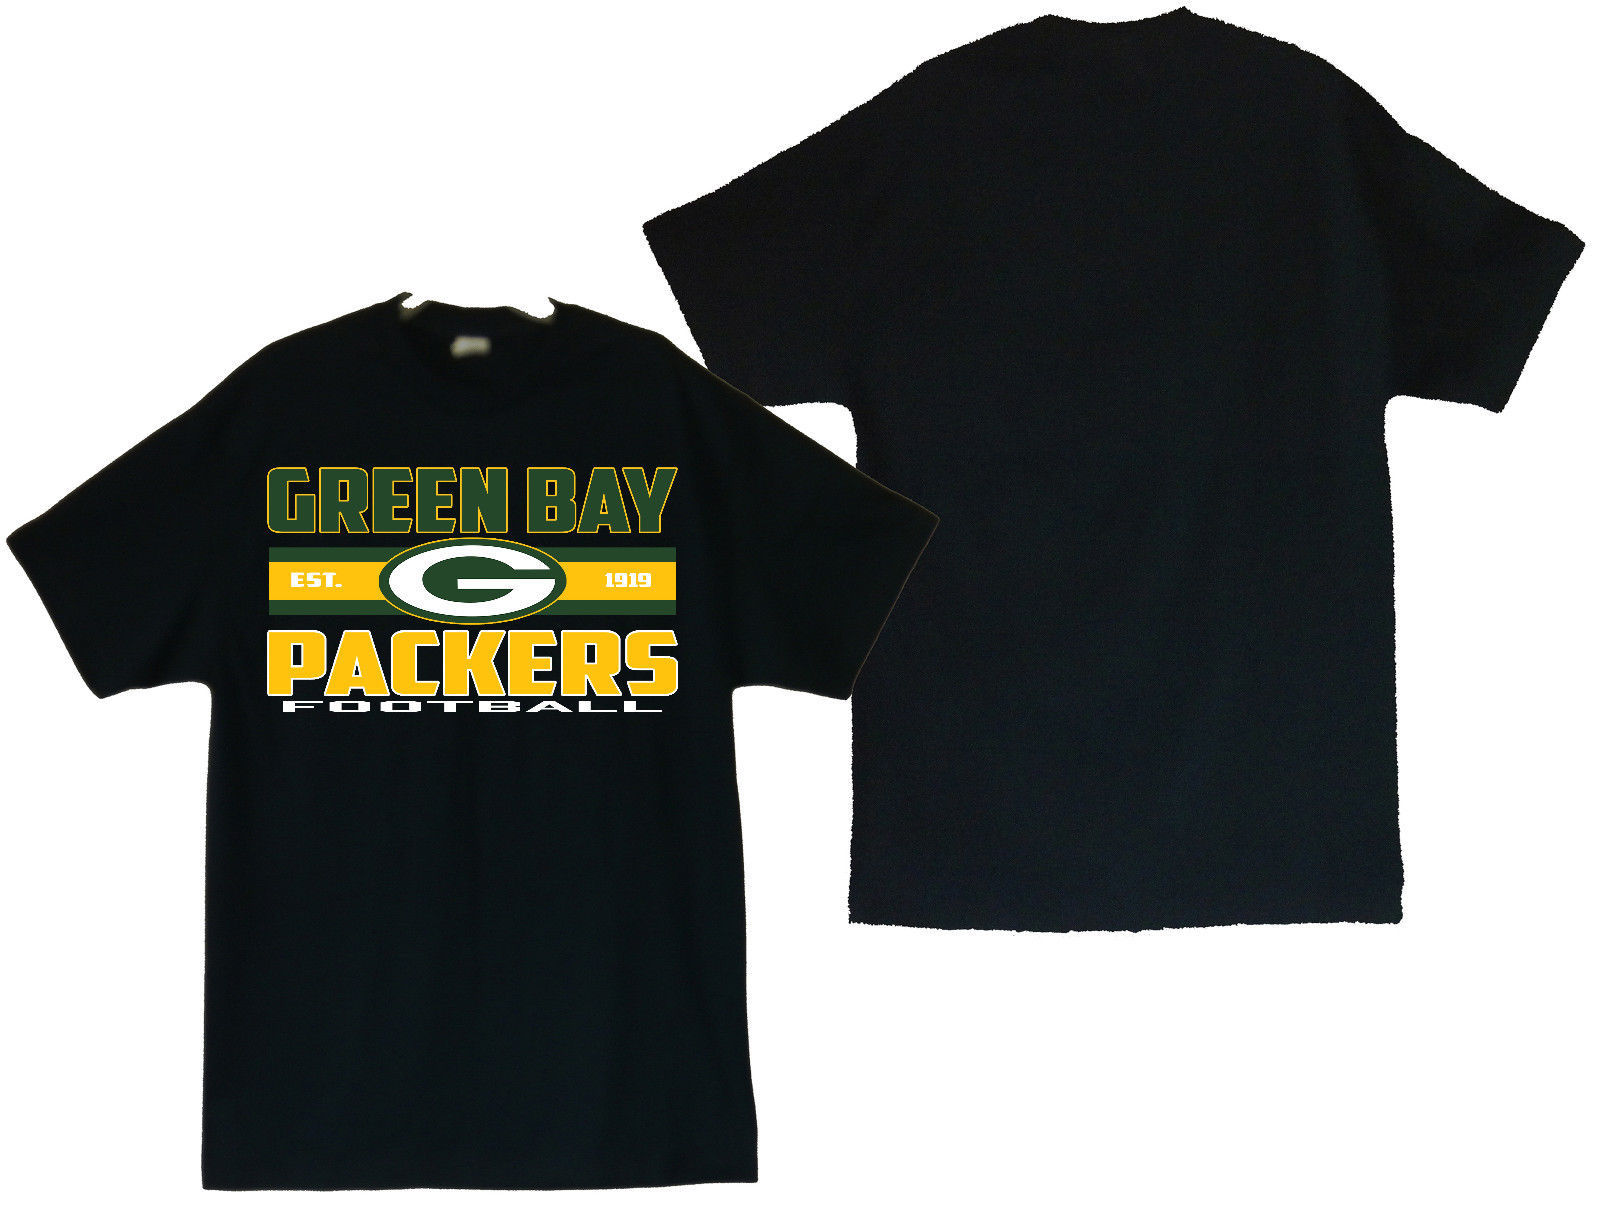 Primary image for Green Bay Packers Football Men's T-Shirts Sizes (S thru 4XL)